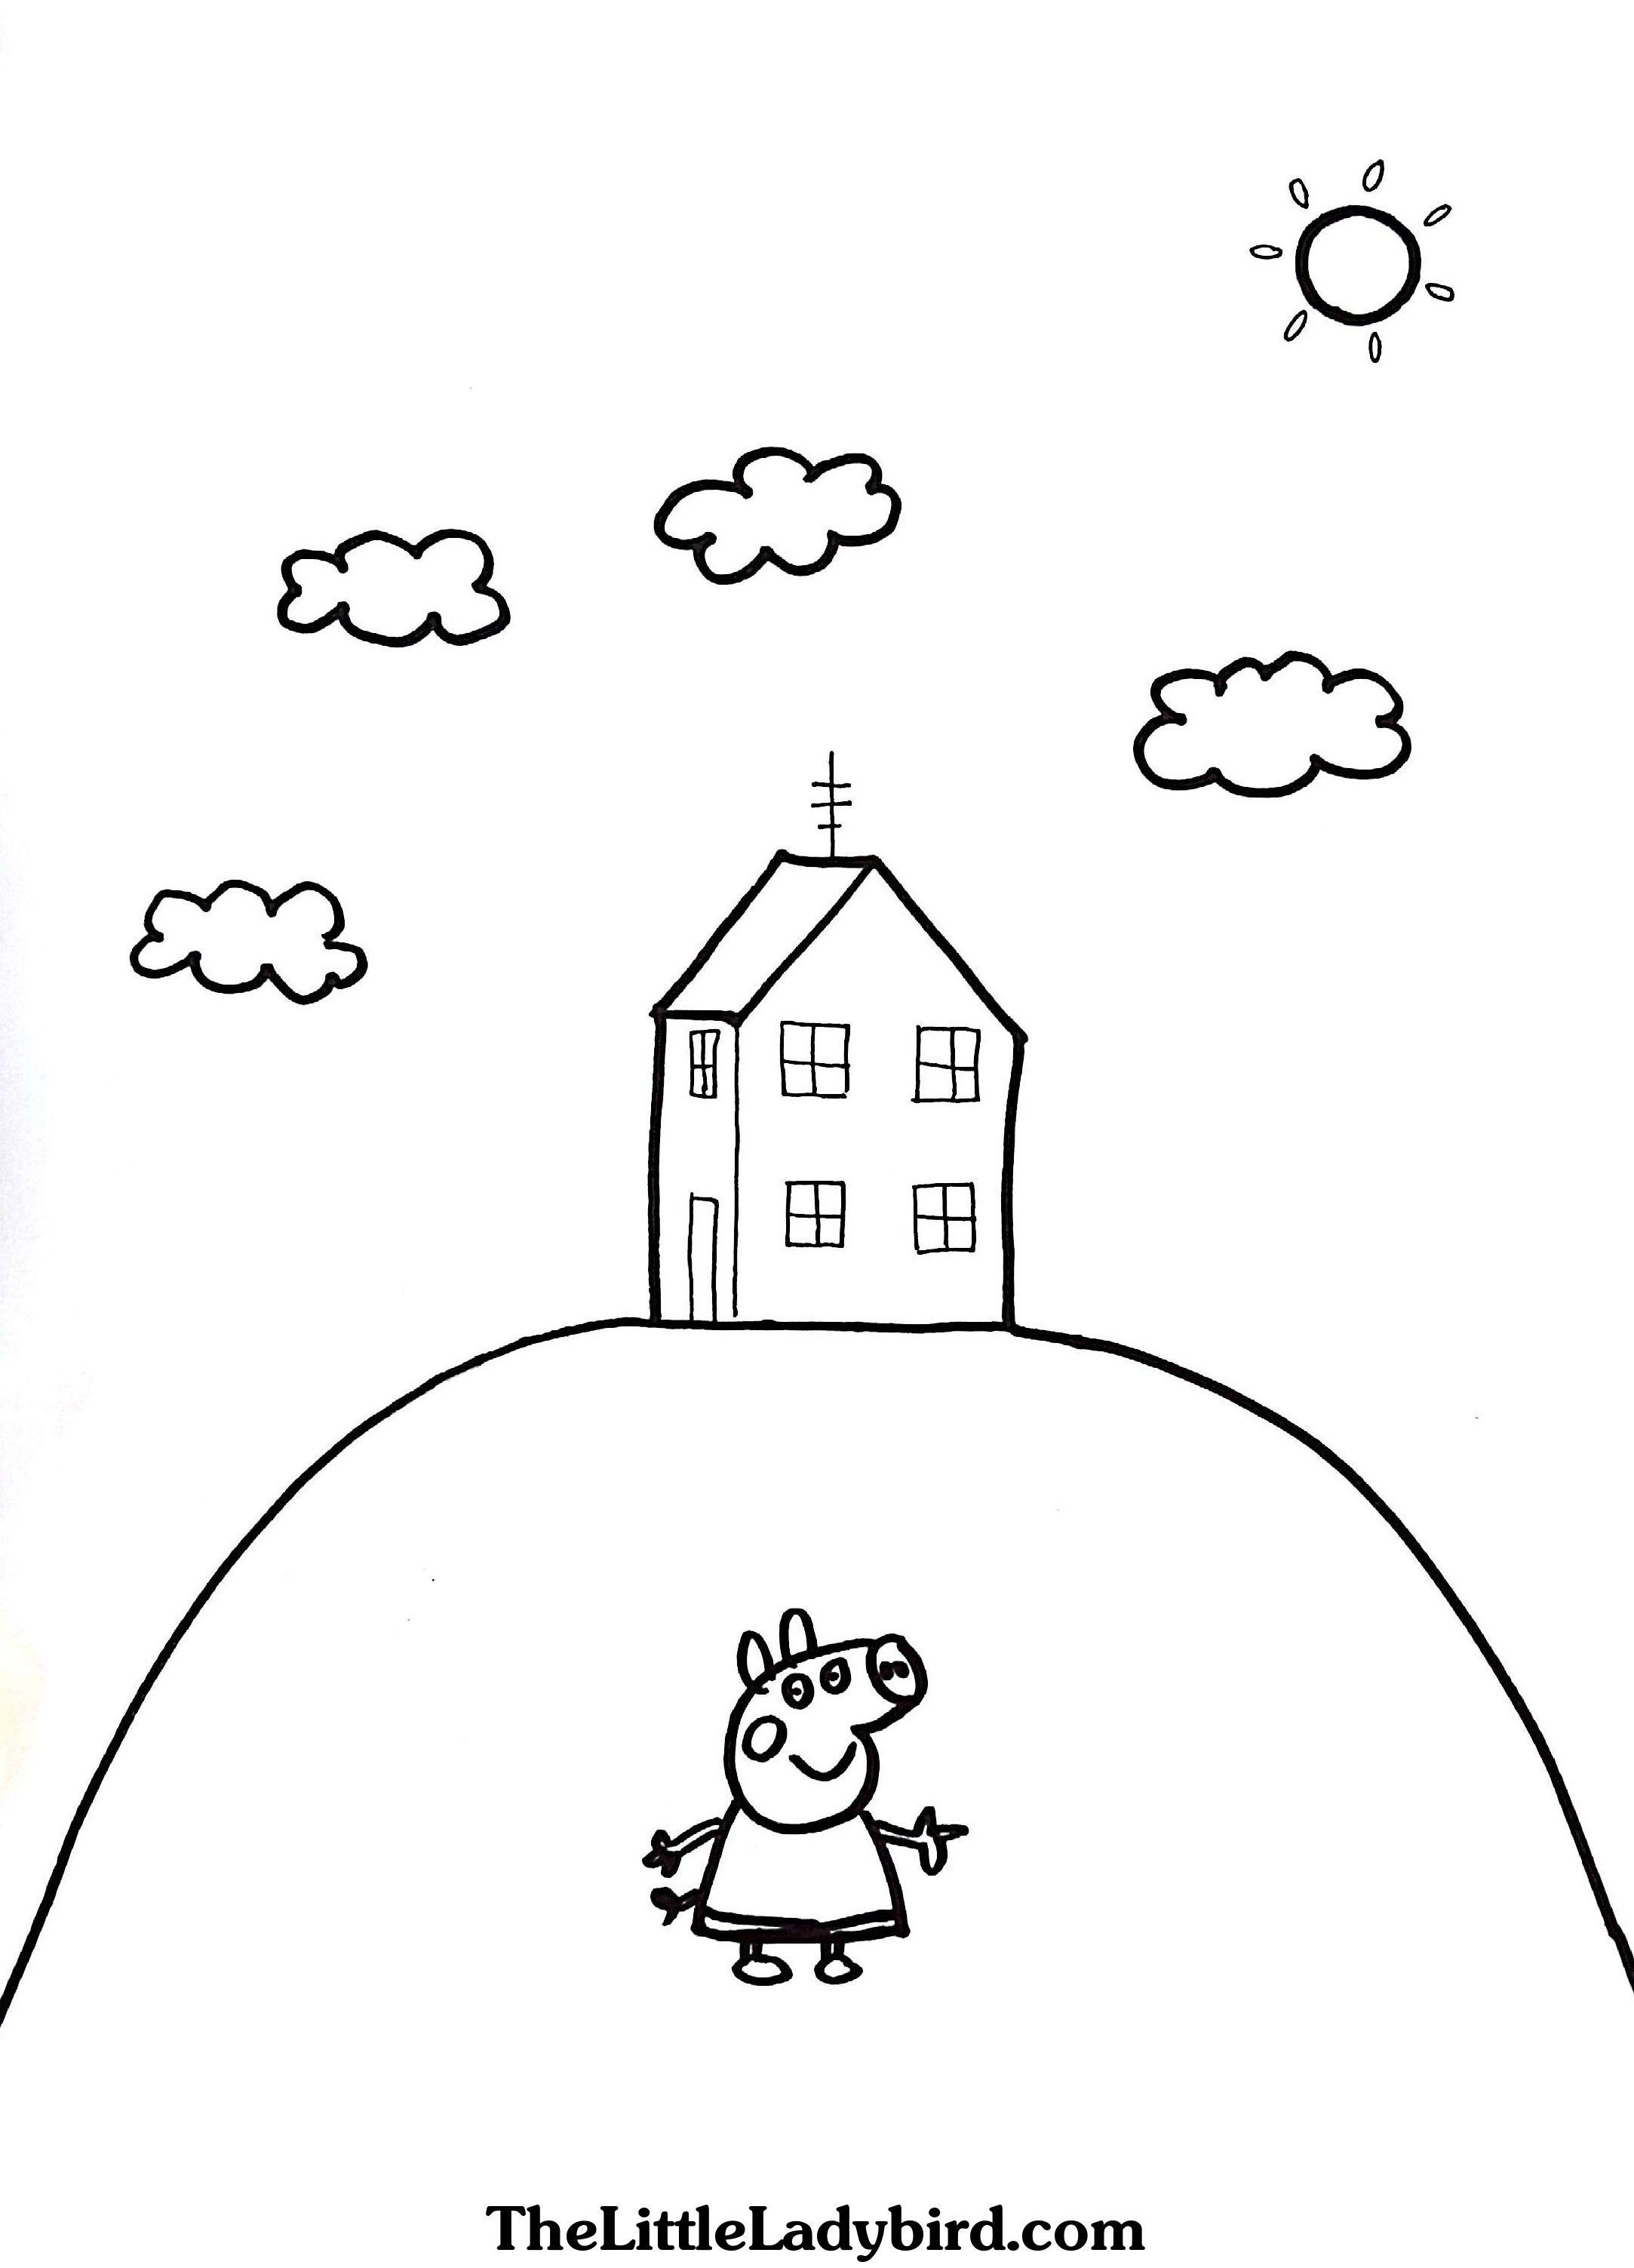 Peppa Pig House Colouring Pages Peppa Pig Coloring Pages Peppa